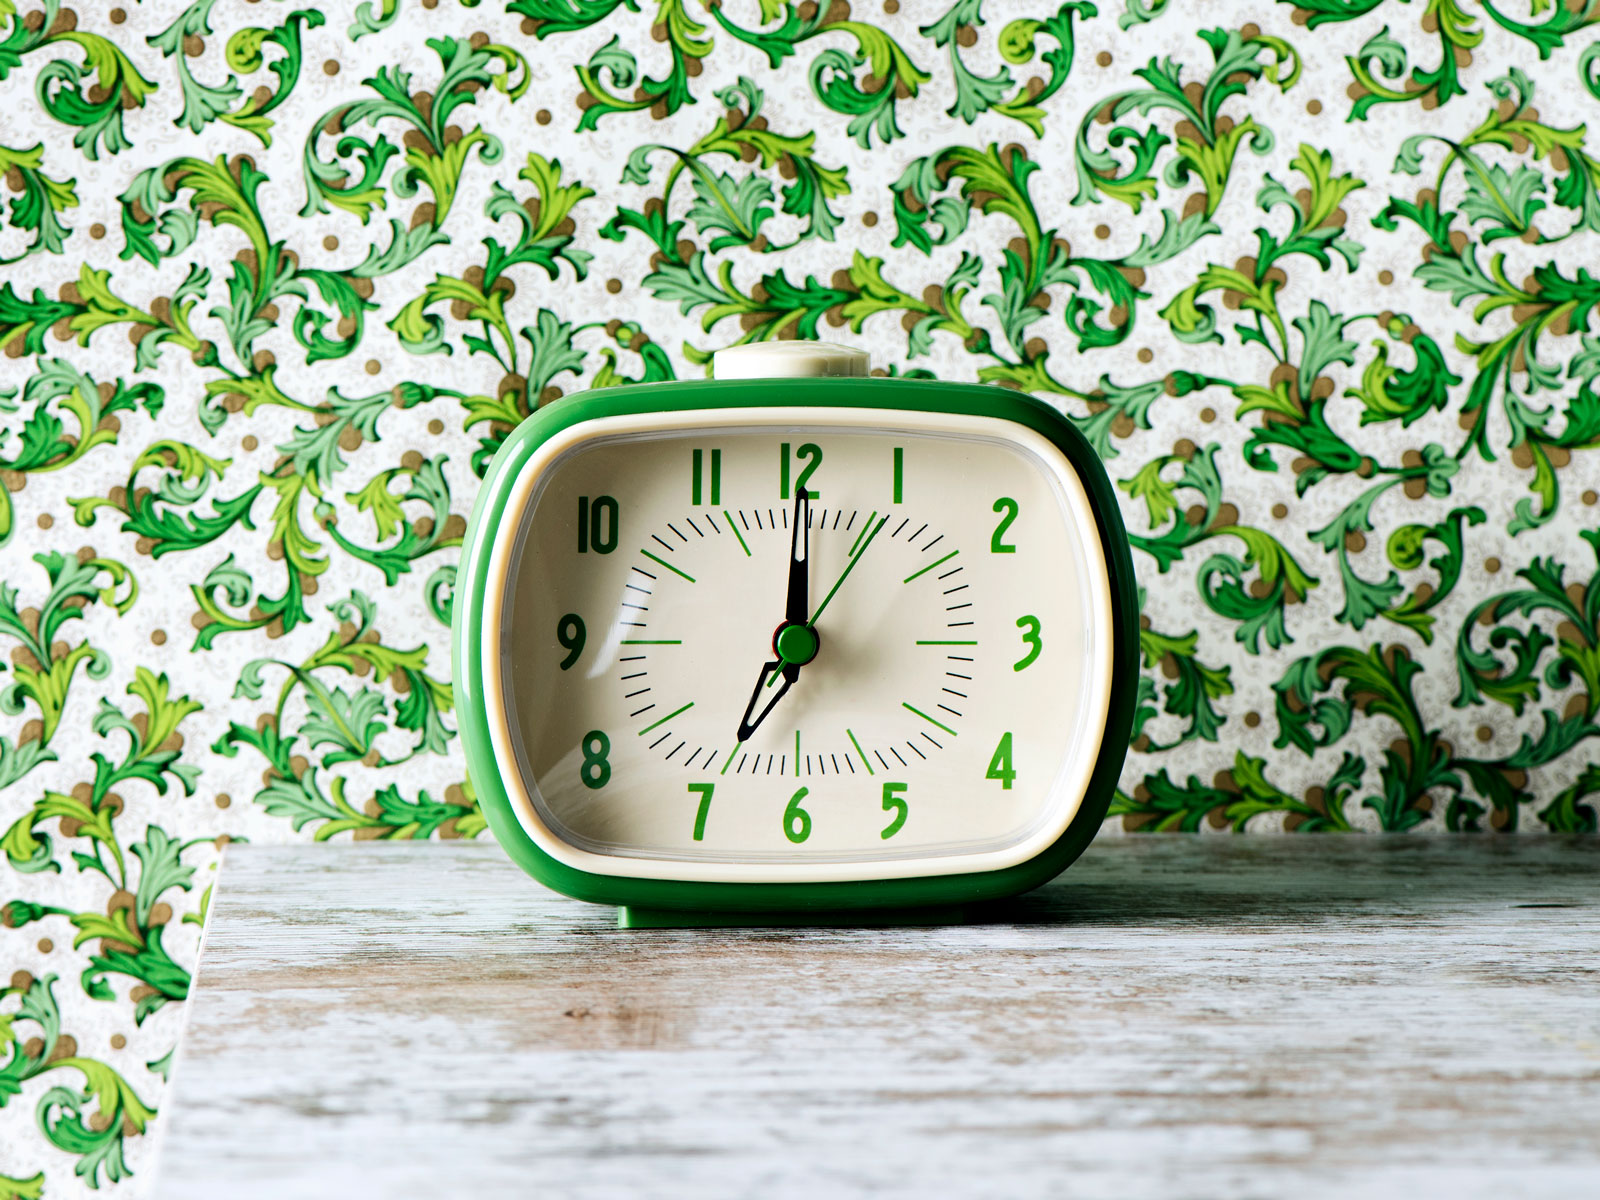 A green clock in front of a green floral print wallpapered wall - horizontal layout